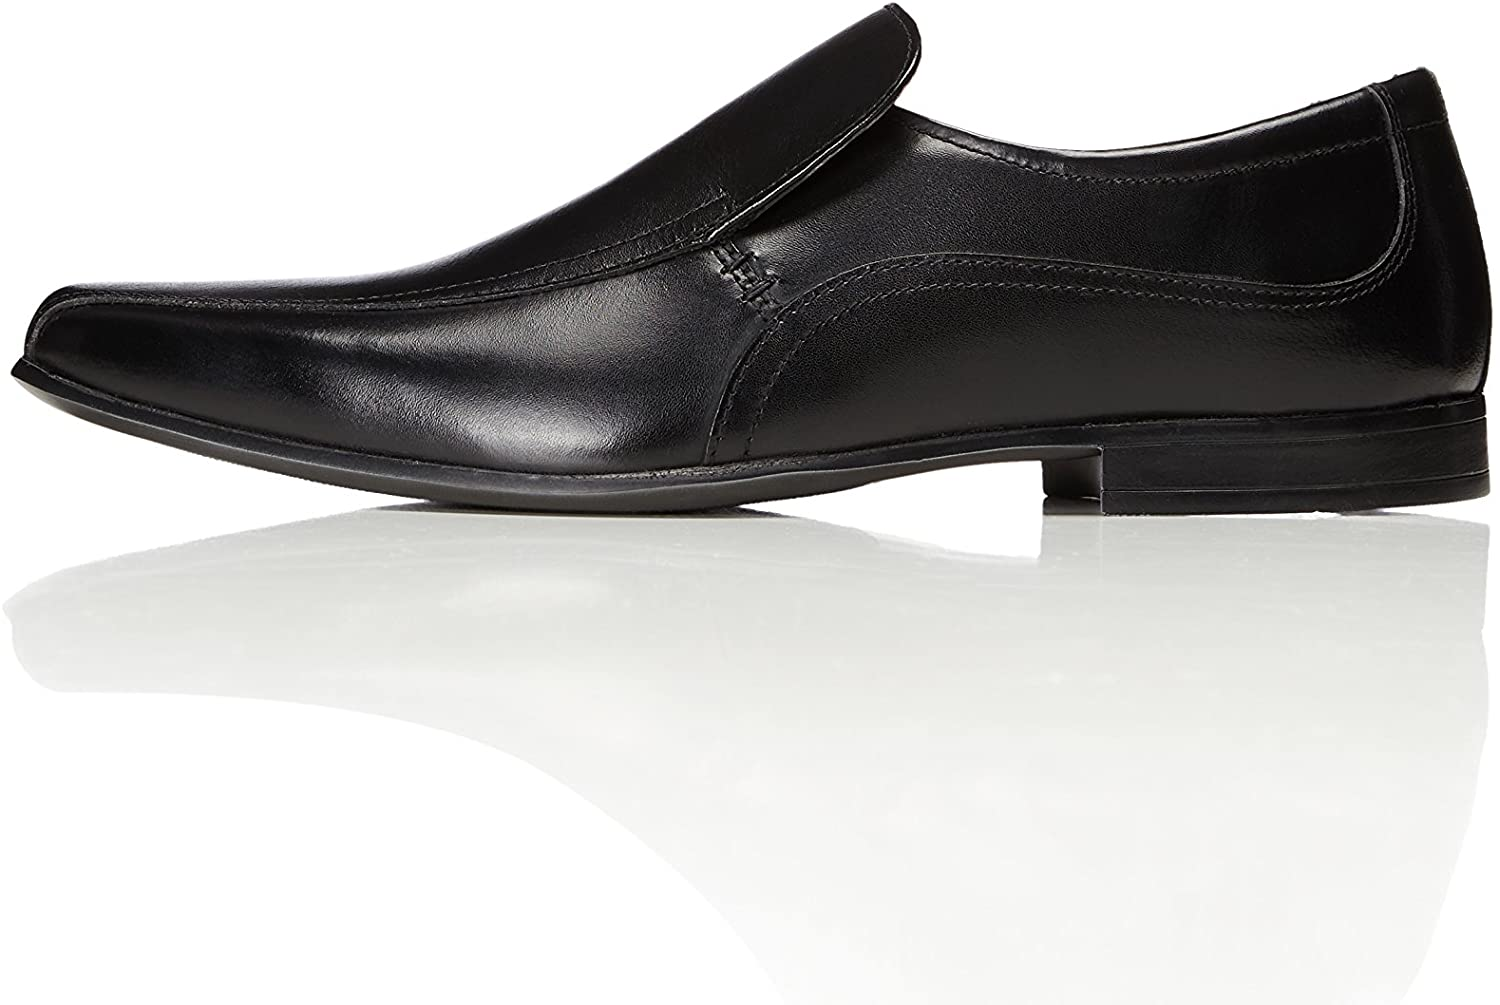 DHgate Brand - find. Men's Andros Slip-on Loafers